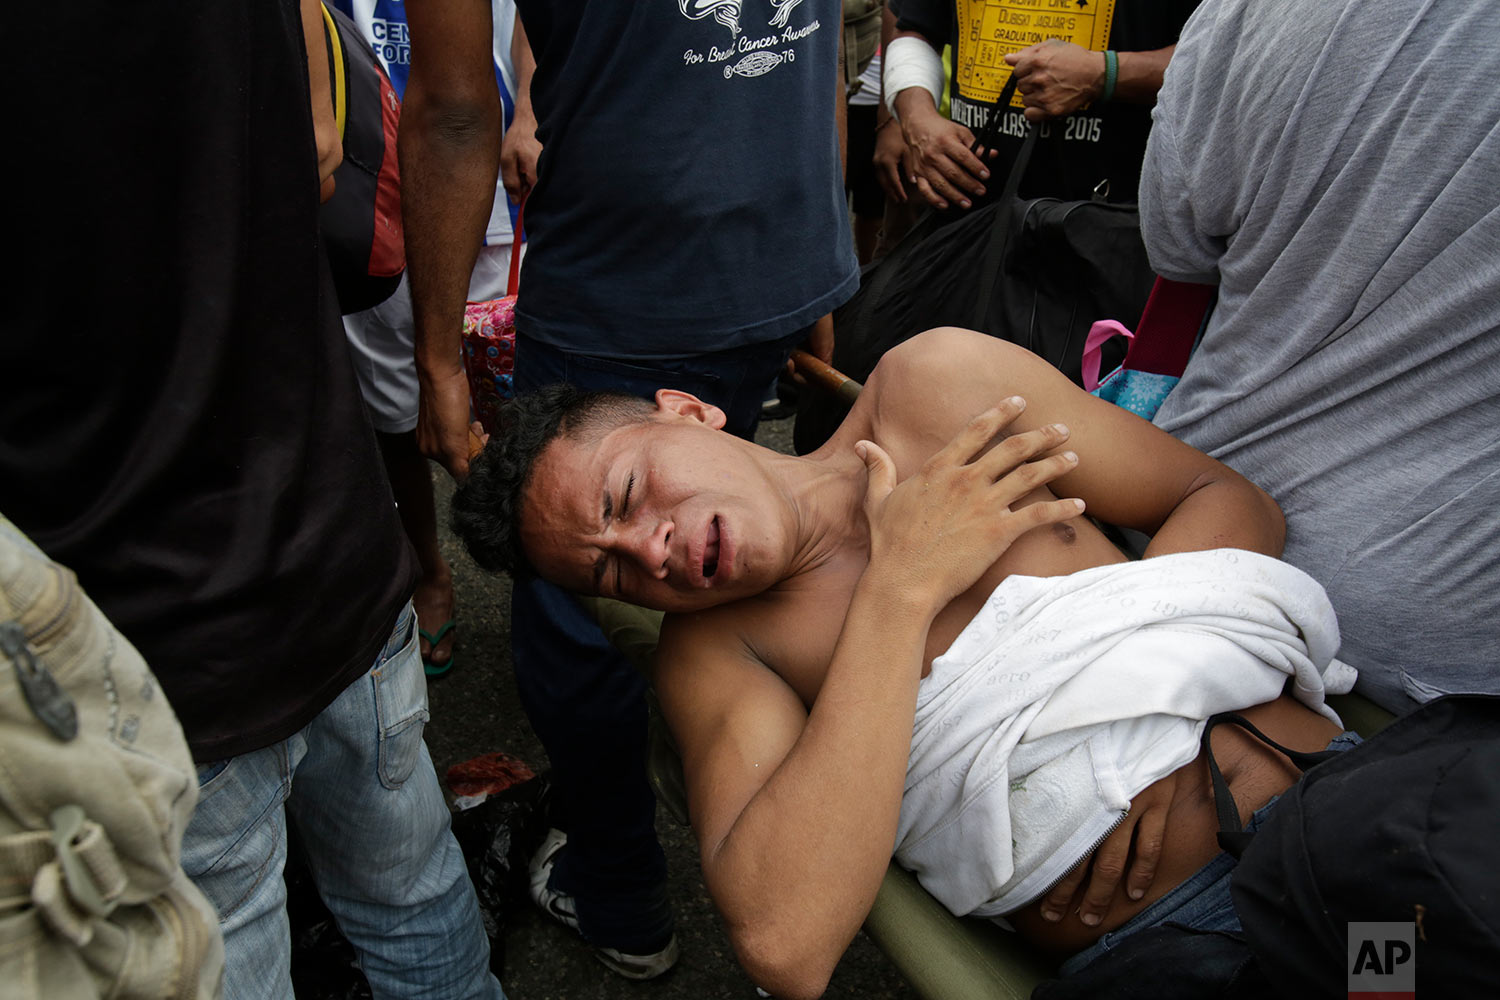 A wounded man grimaces in pain after clashes with the Mexican Federal Police at the border crossing in Ciudad Hidalgo, Mexico, Friday, Oct. 19, 2018. (AP Photo/Moises Castillo)